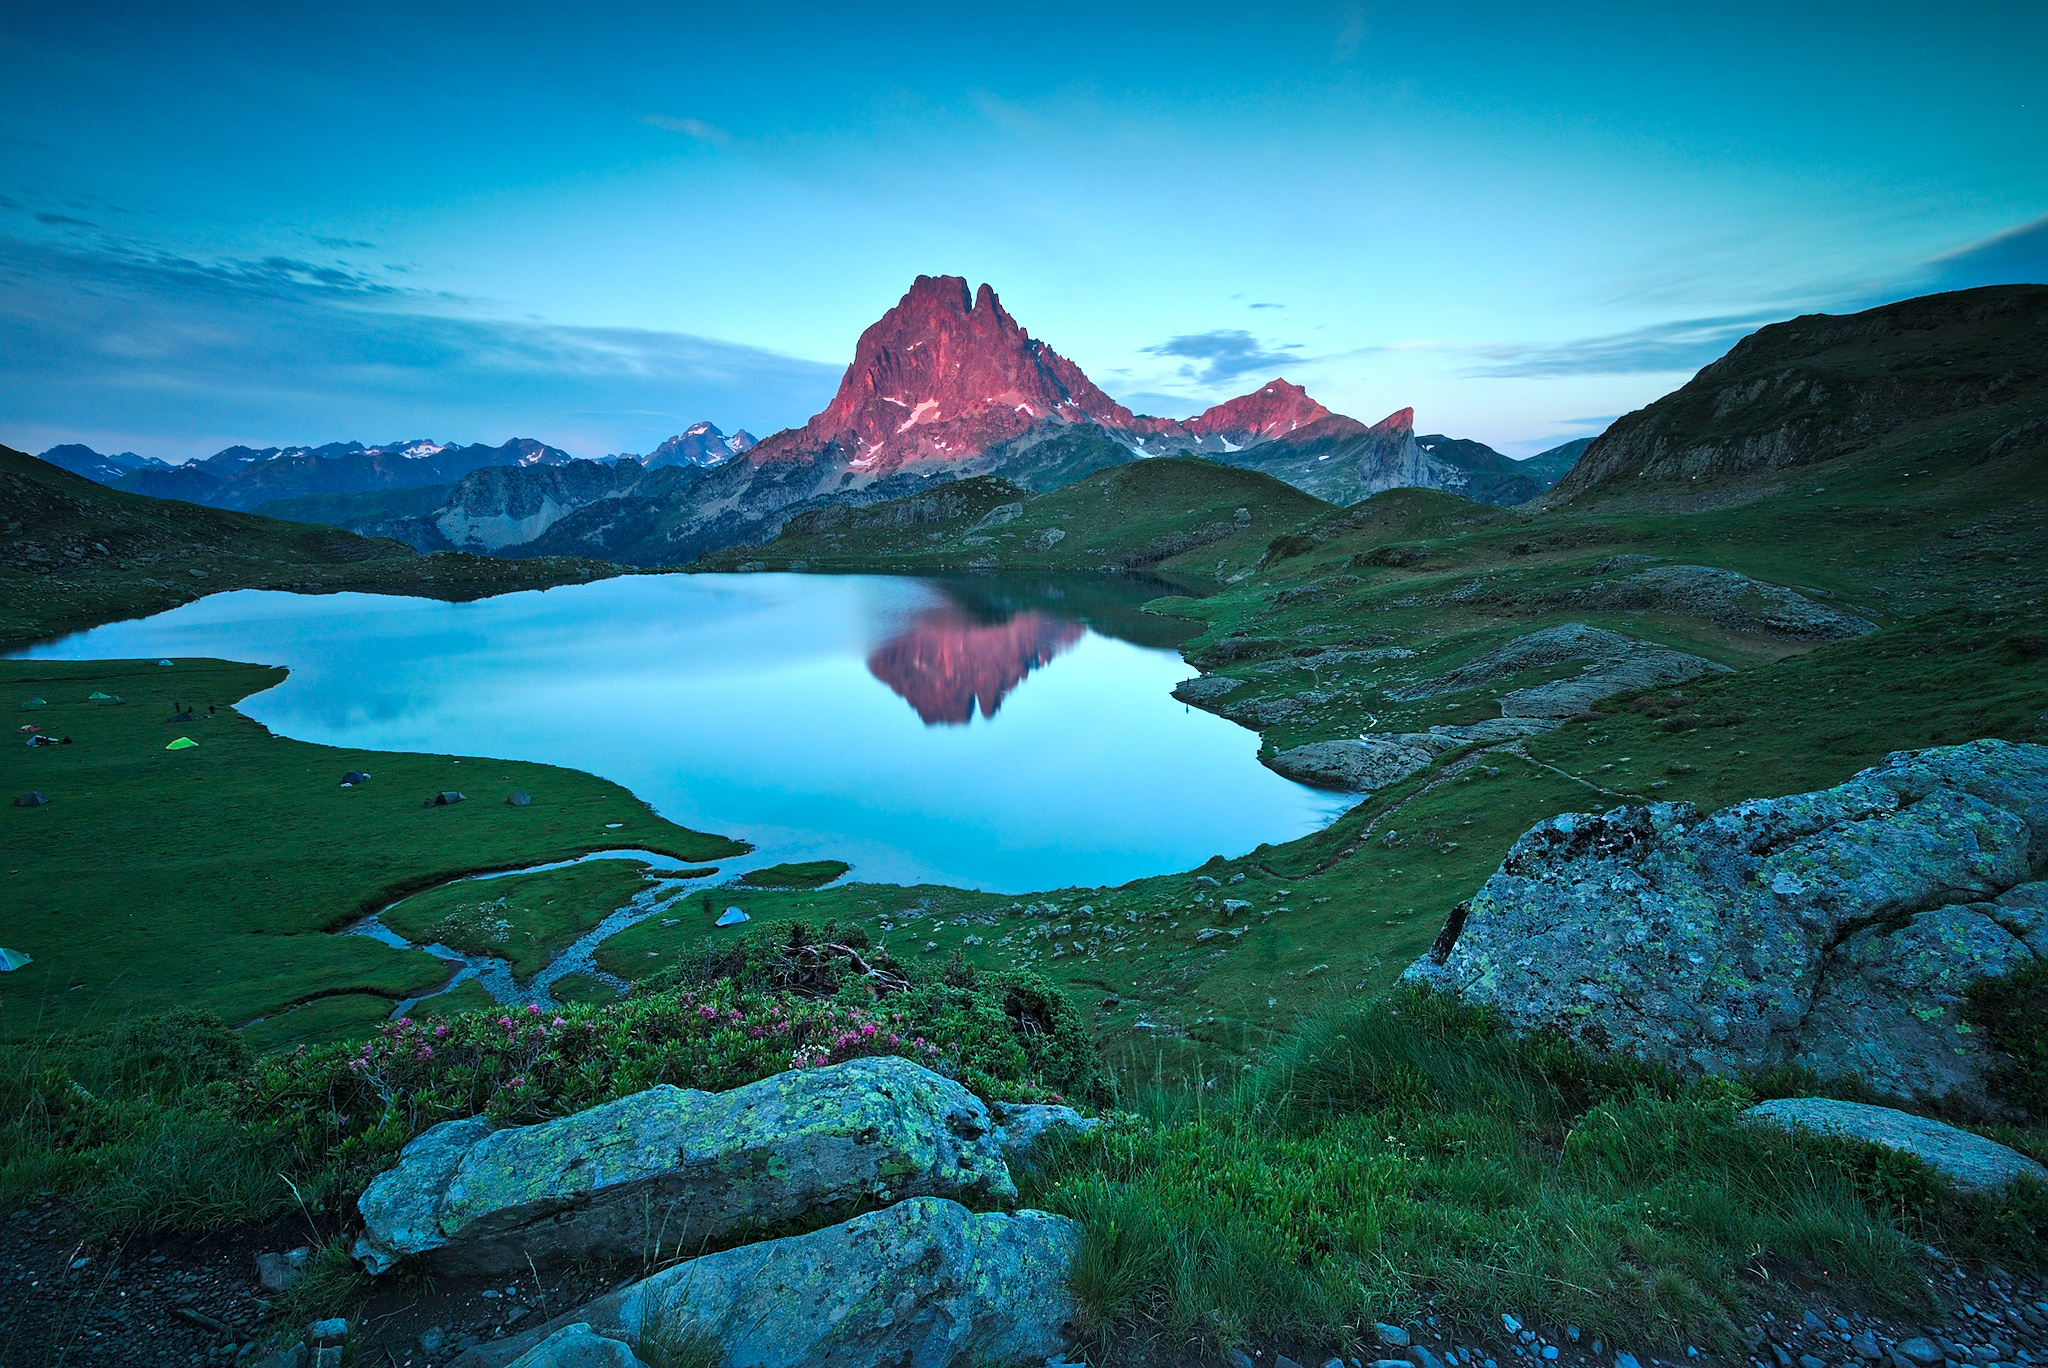 View on Ossau summit from Ayous lake, France